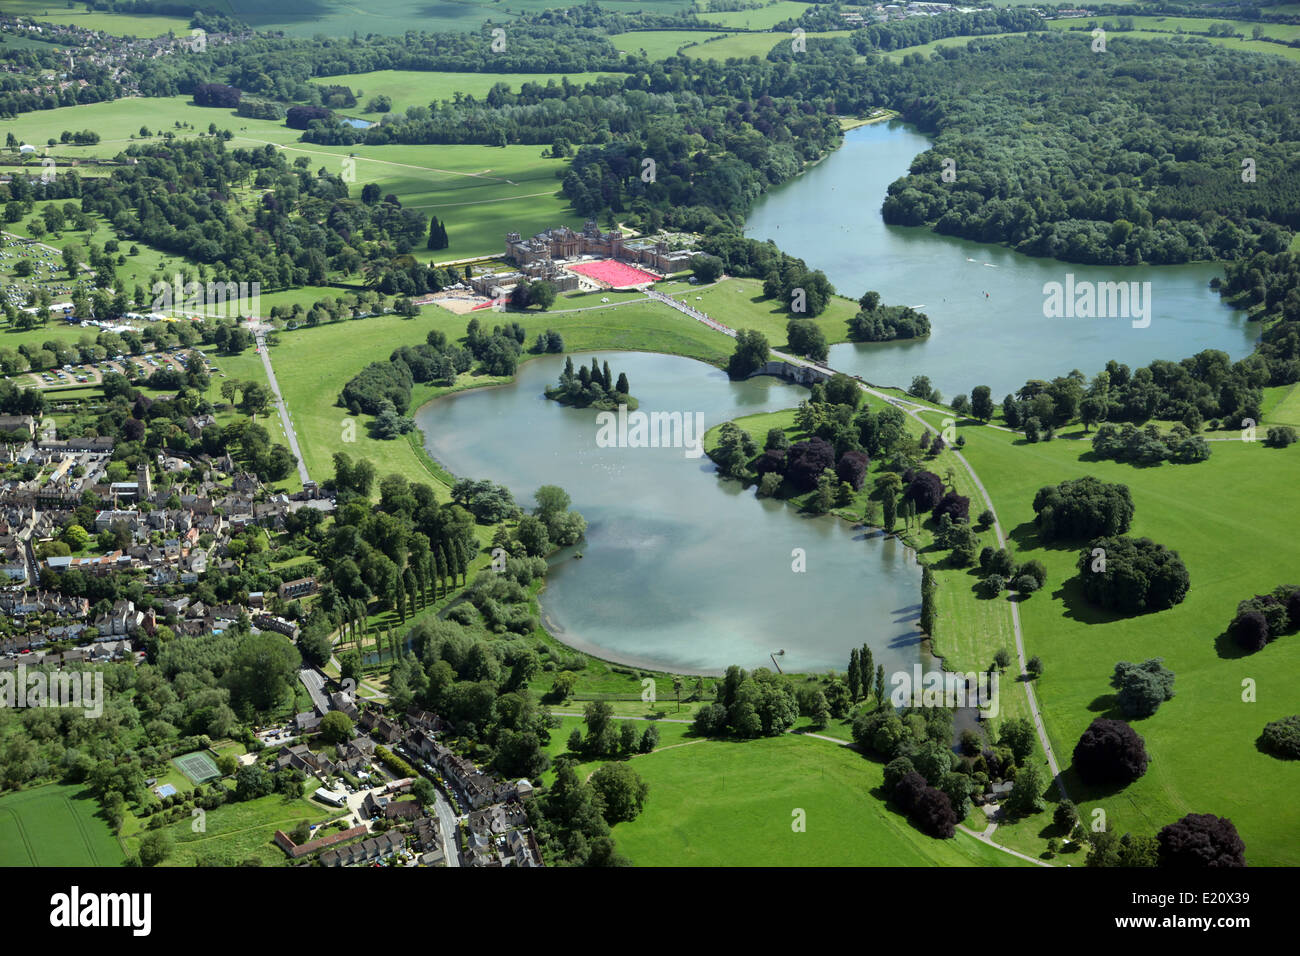 aerial view of Blenheim Palace in Oxfordshire UK during the 2014 Leukaemia & Lymphoma Research Triathlon - Stock Image